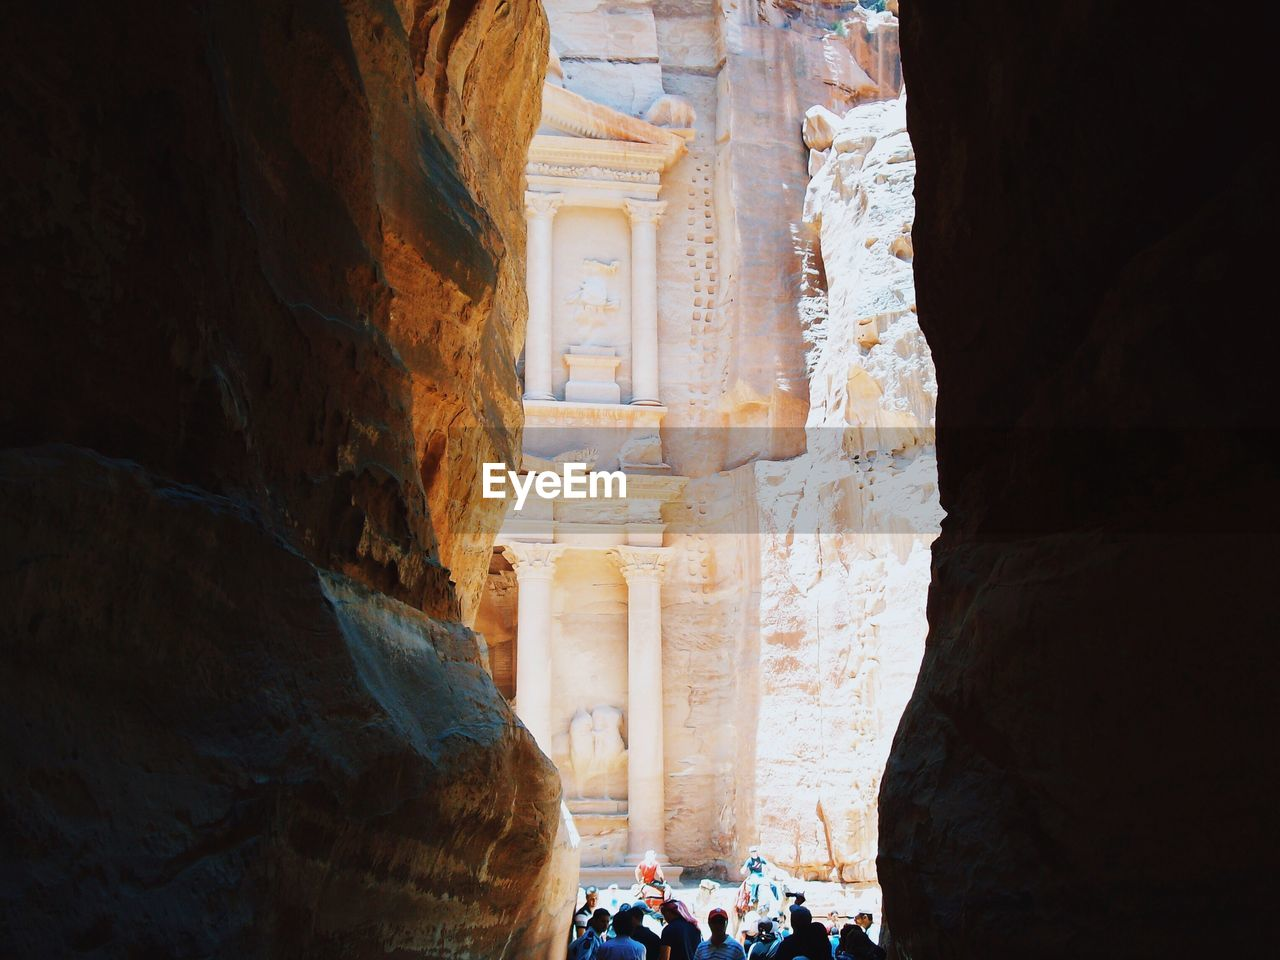 People amidst rock formations at petra